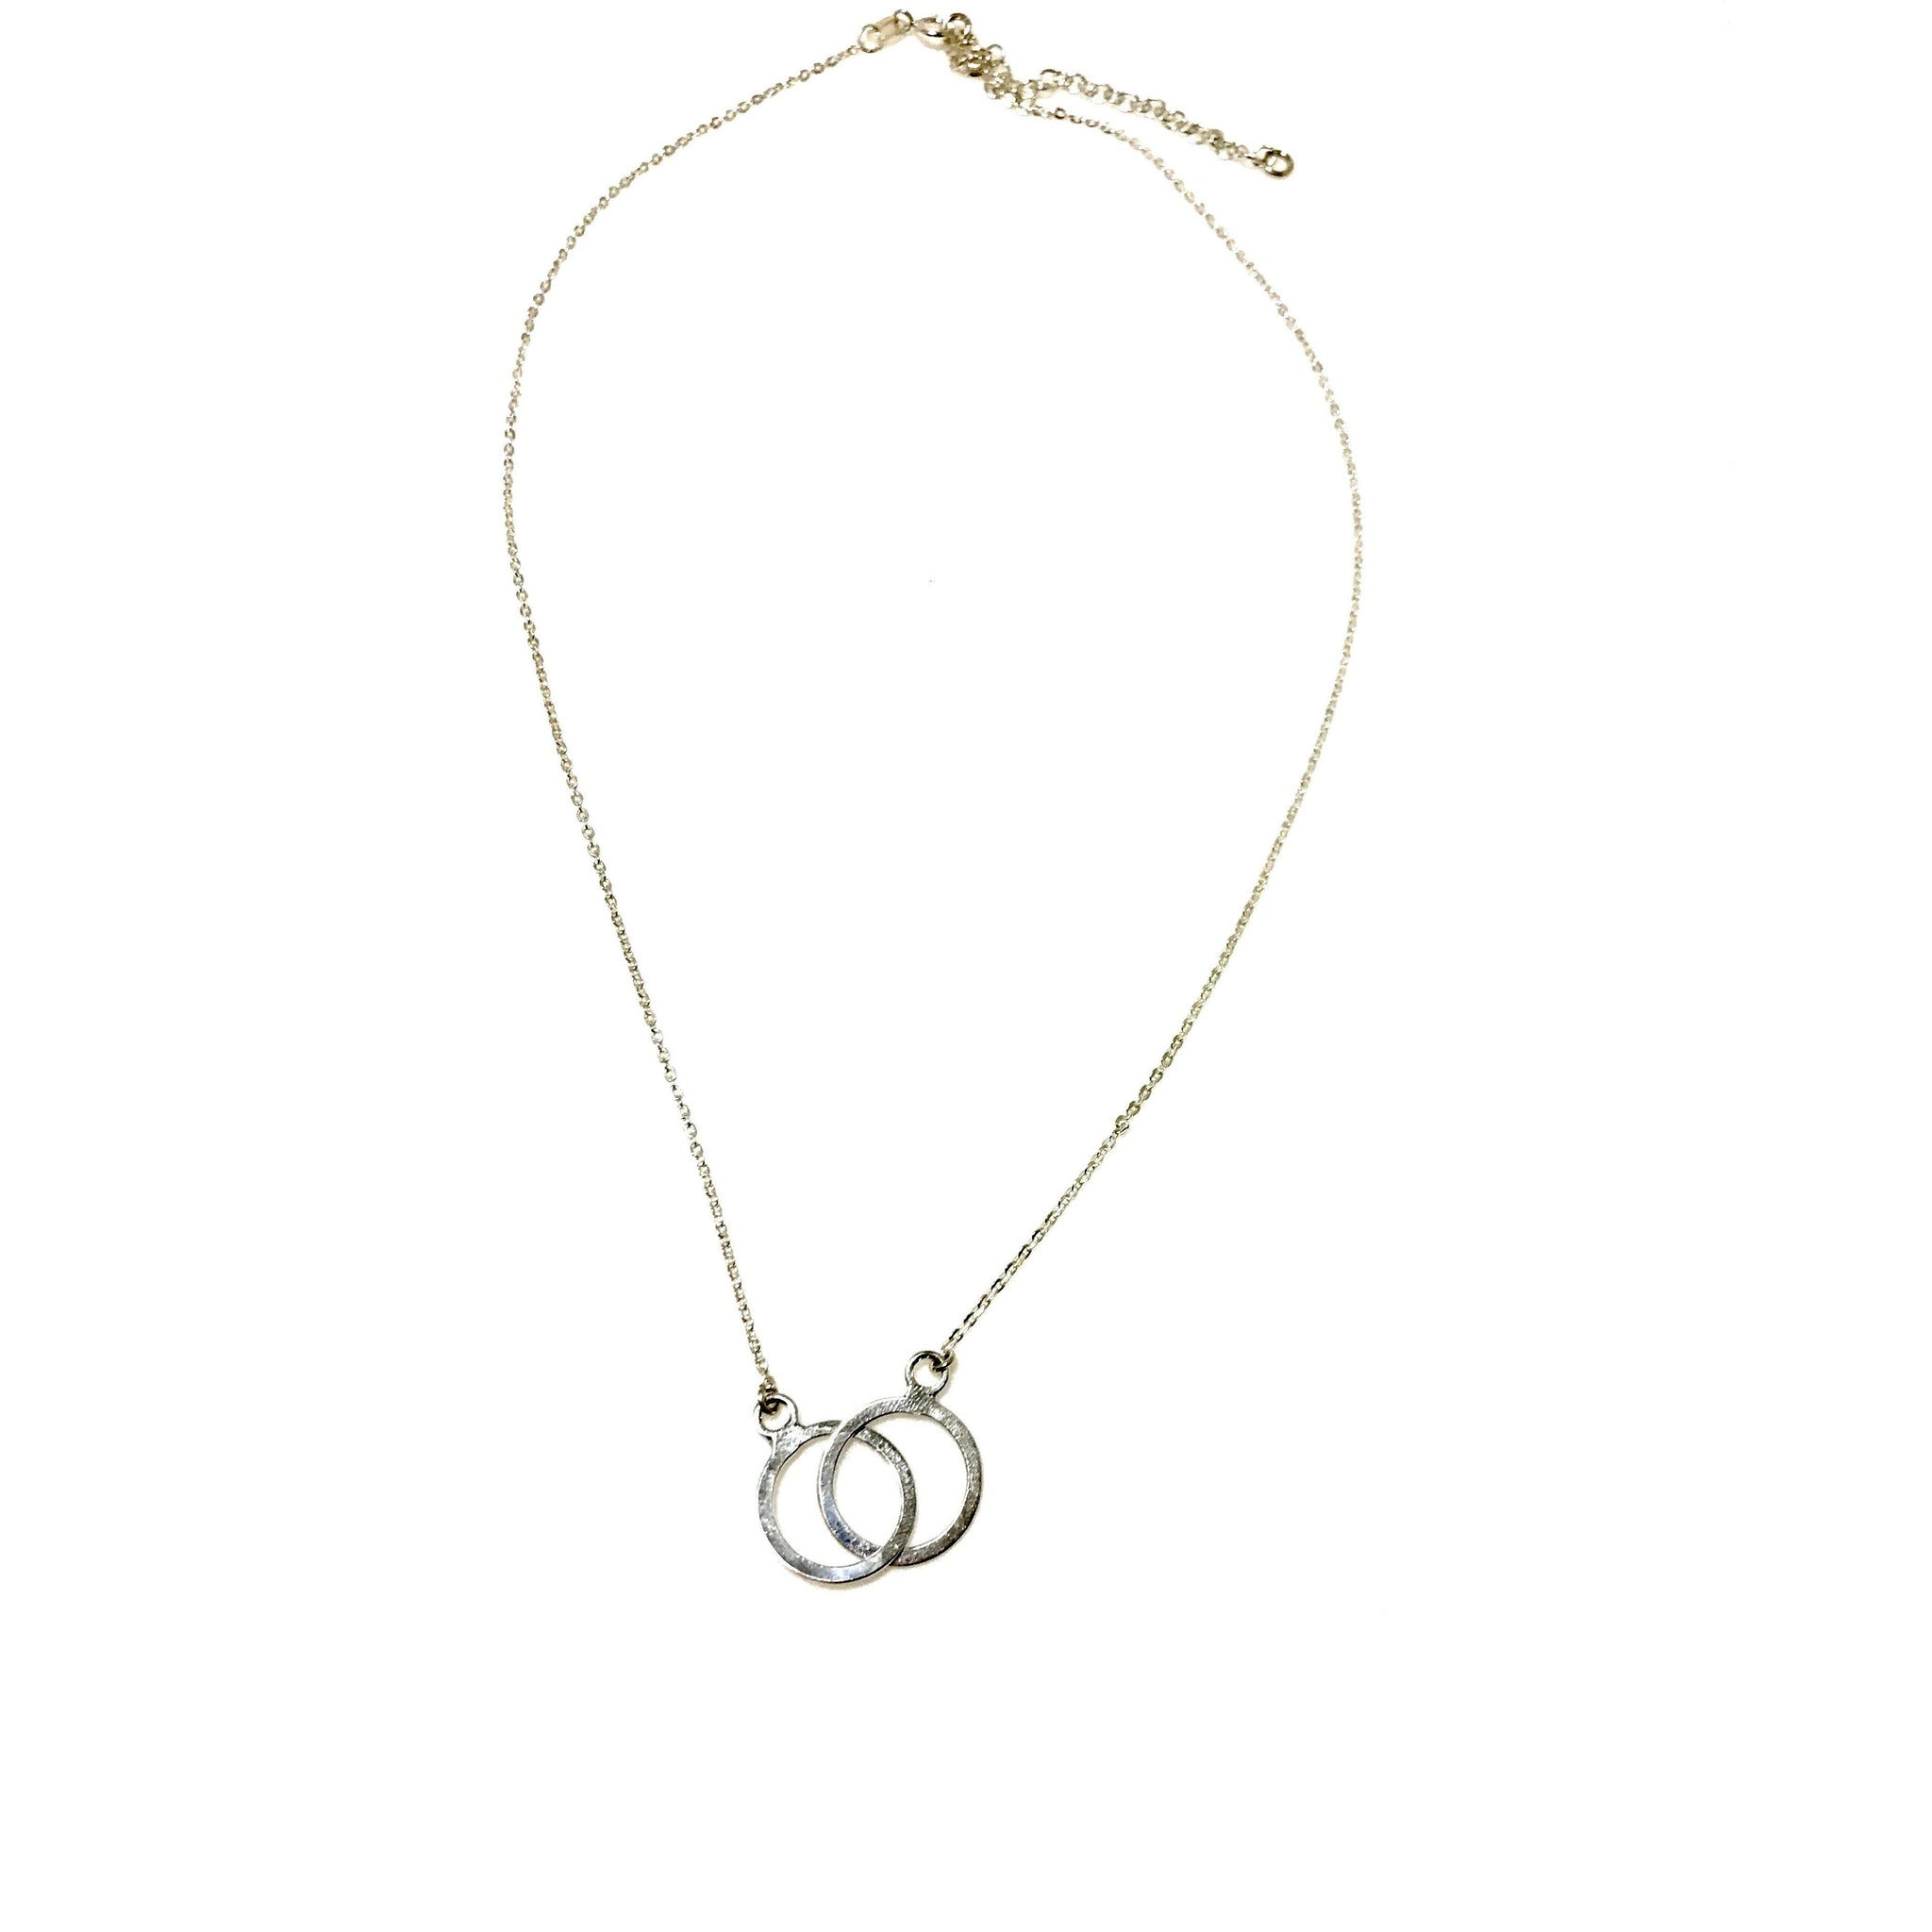 Sterling Silver Double Ring Adjustable Necklace - SPREE